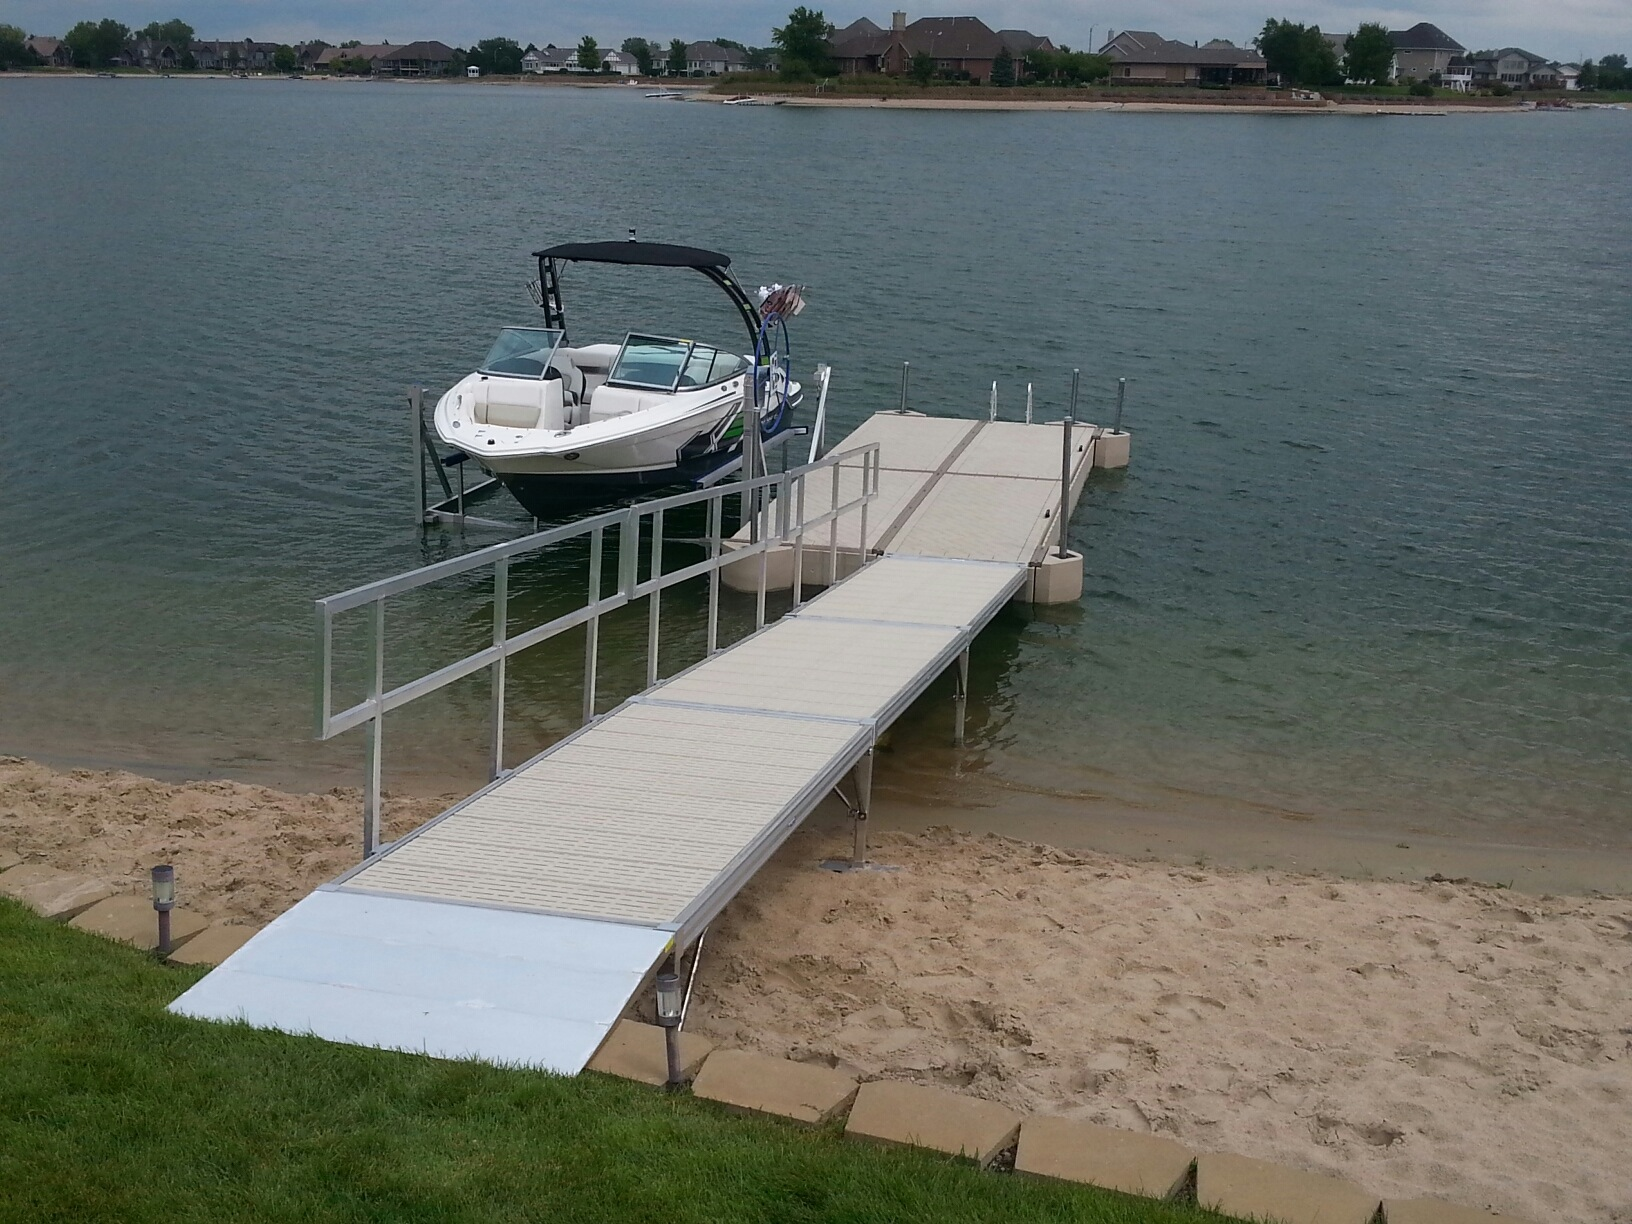 Shoremaster poly dock with Shoremaster aluminum lift installed by Hotwoods in Grand Island, Ne. Complete with Hotwoods custom seawall bridge aluminum entry ramp.